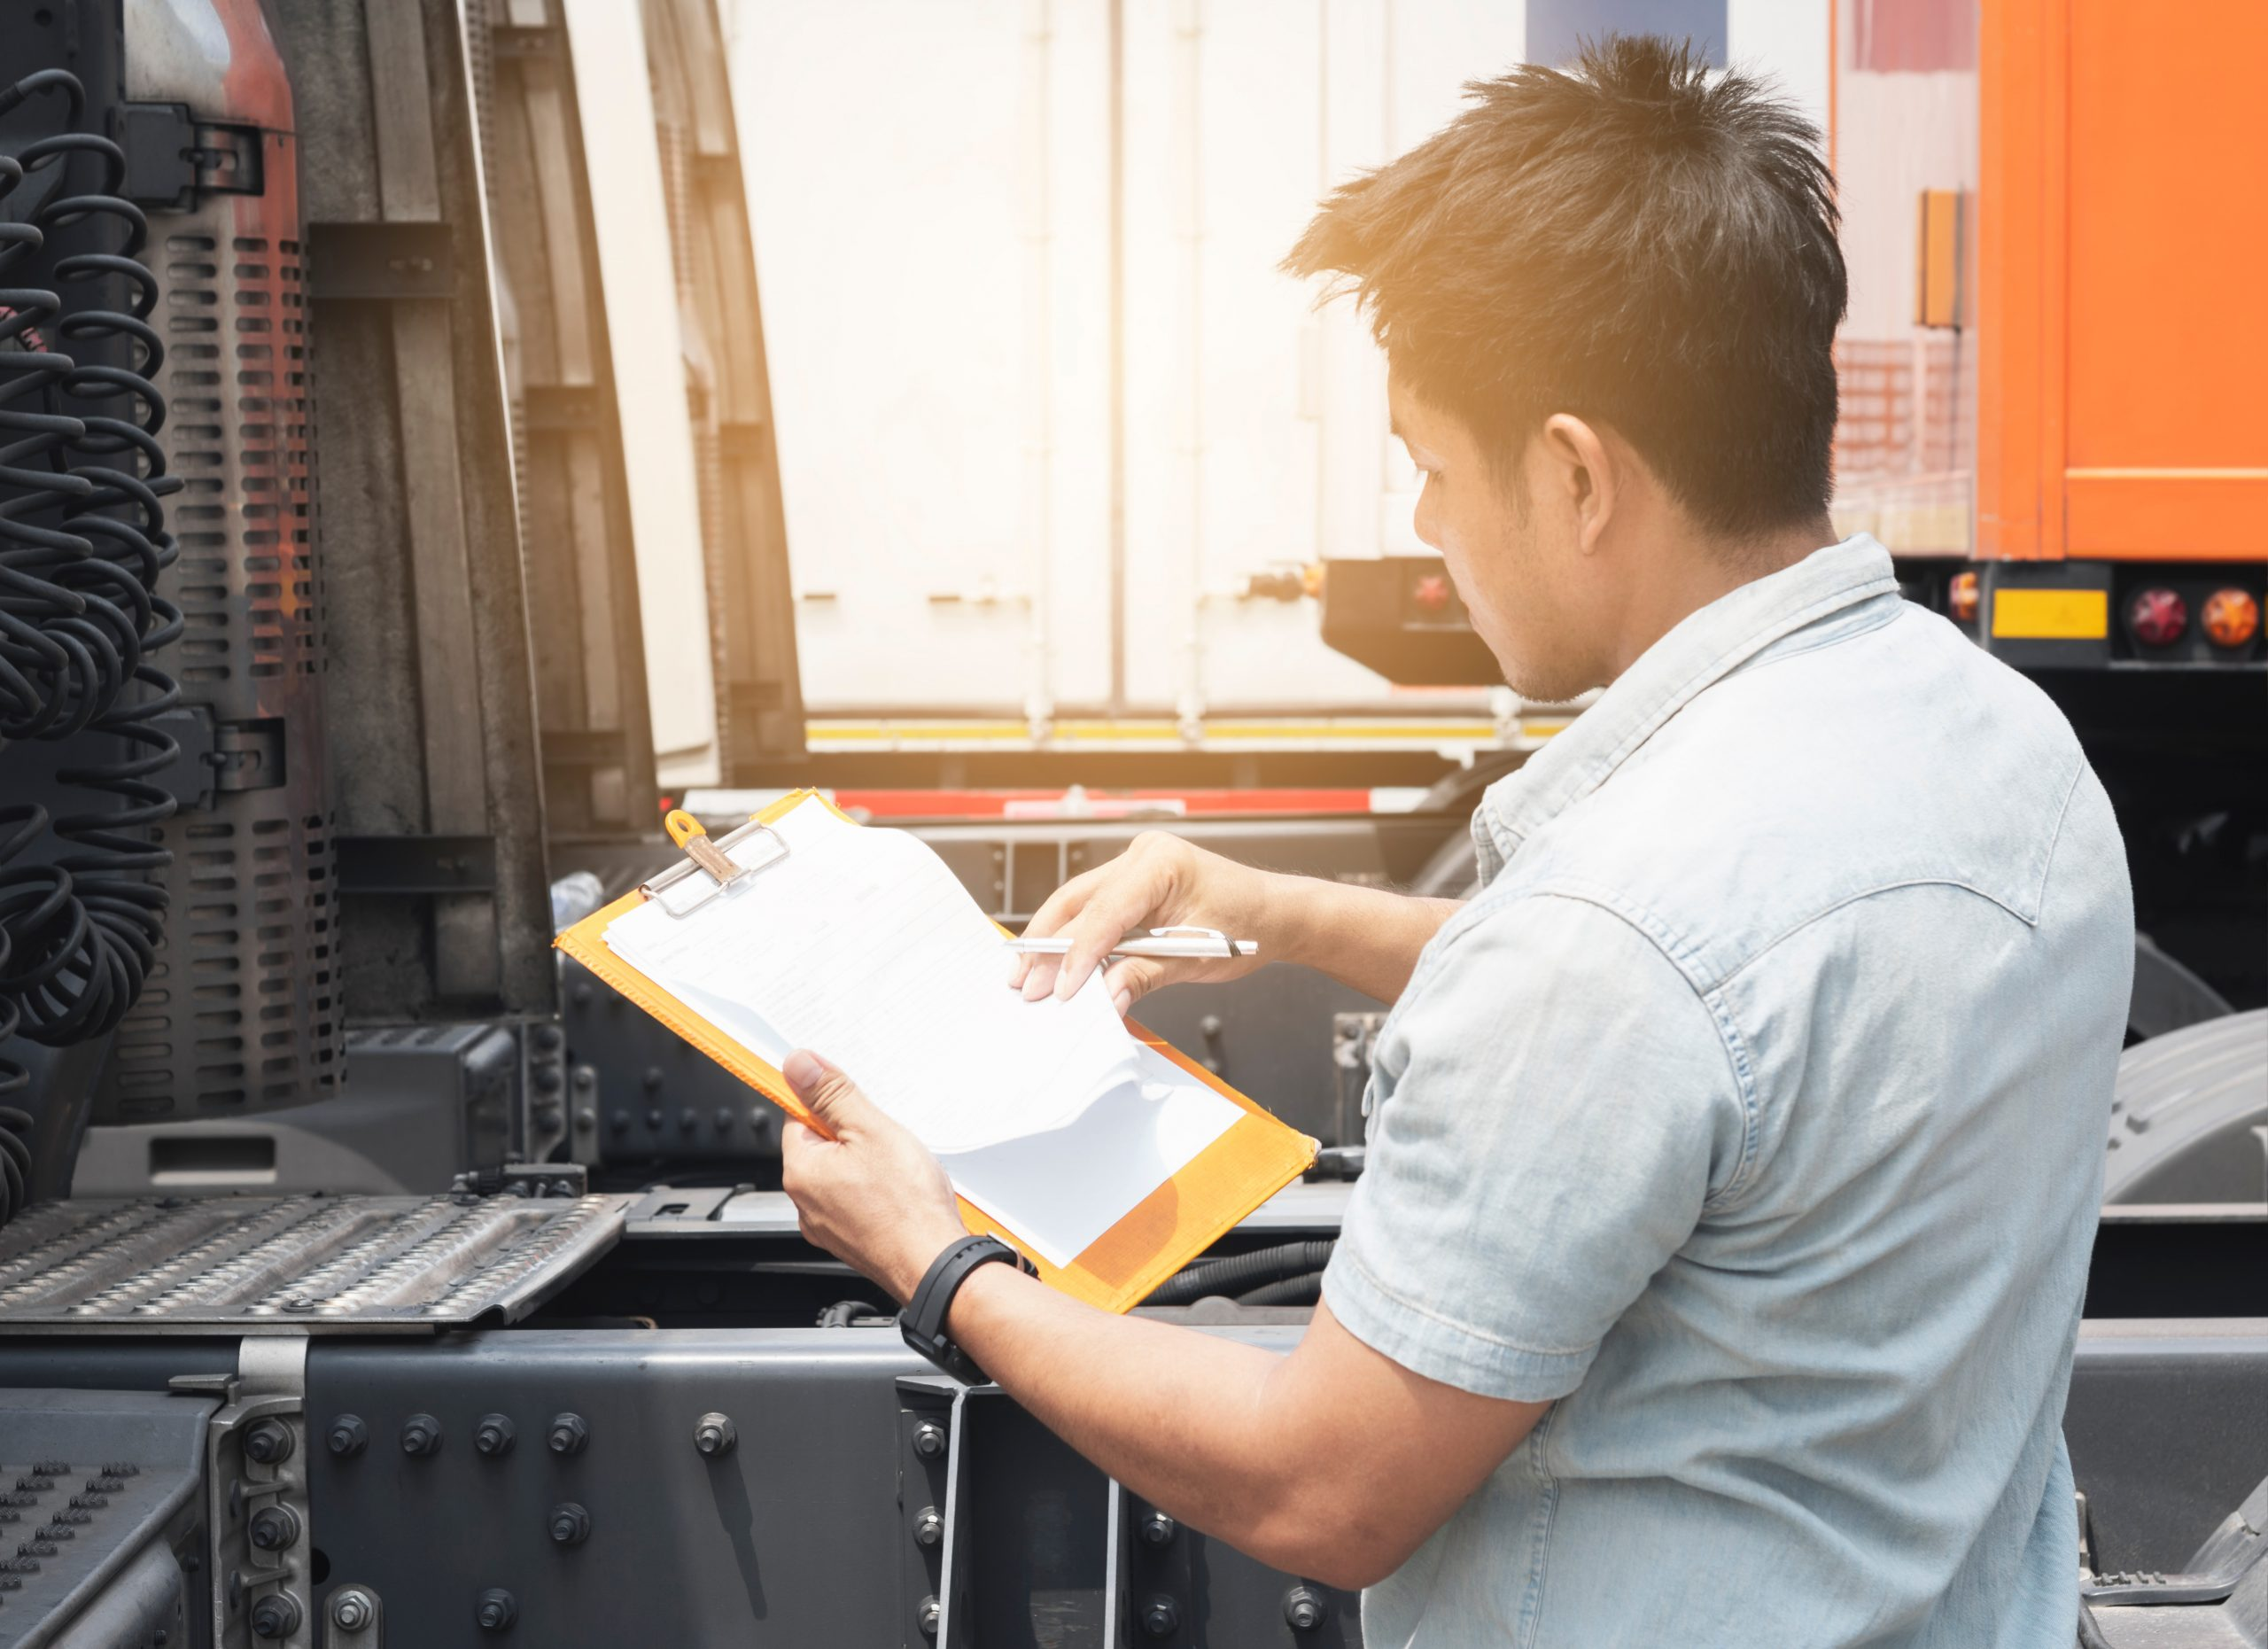 Truck driver holding clipboard inspecting safety vehicle maintenance checklist a truck trailer, Road freight industry logistics